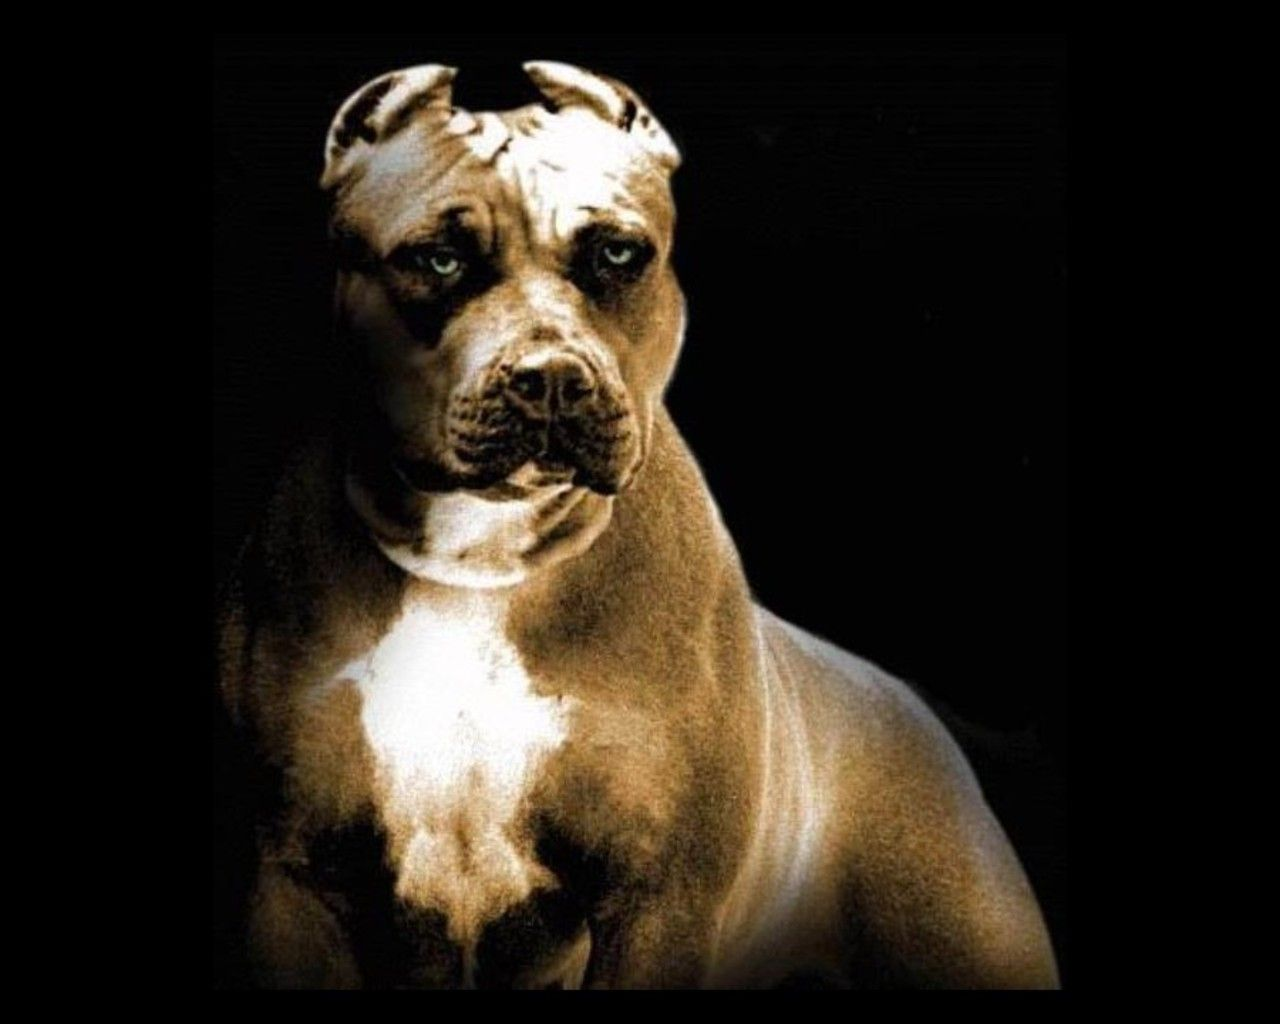 Pitbull Dog Wallpaper HD